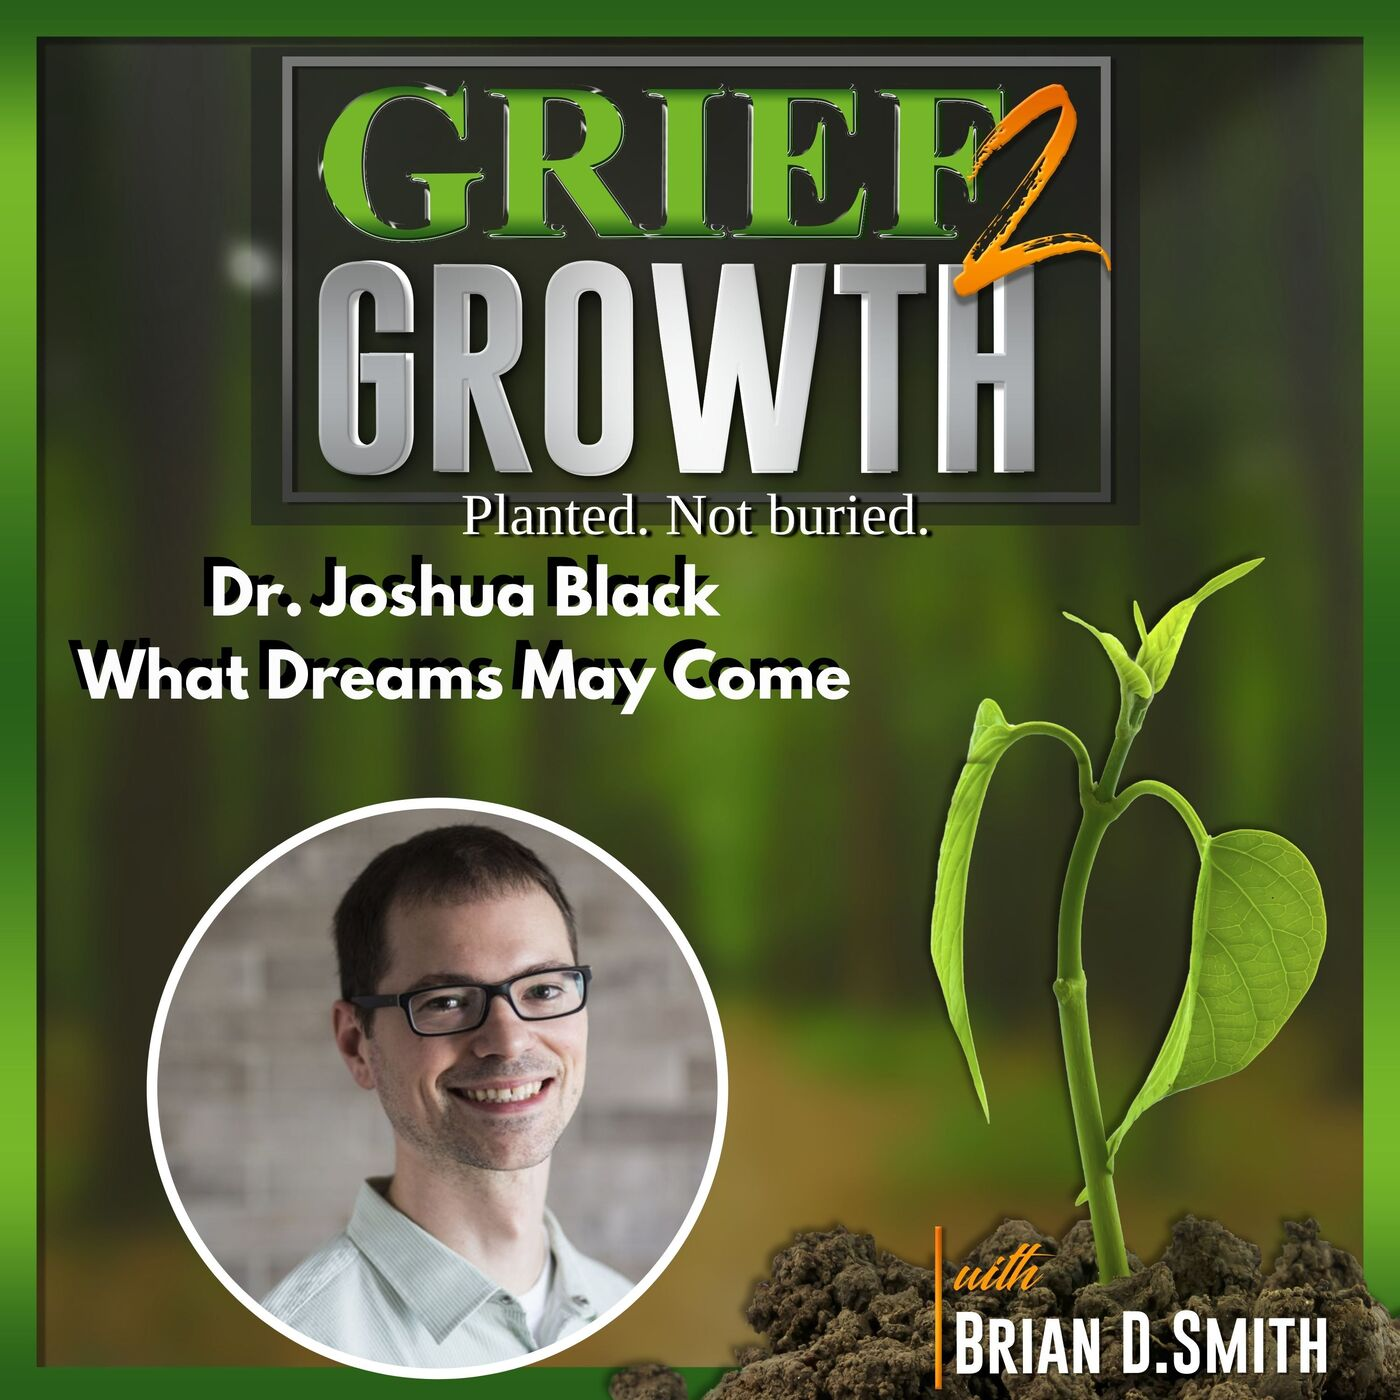 Dr. Joshua Black- What Dreams May Come